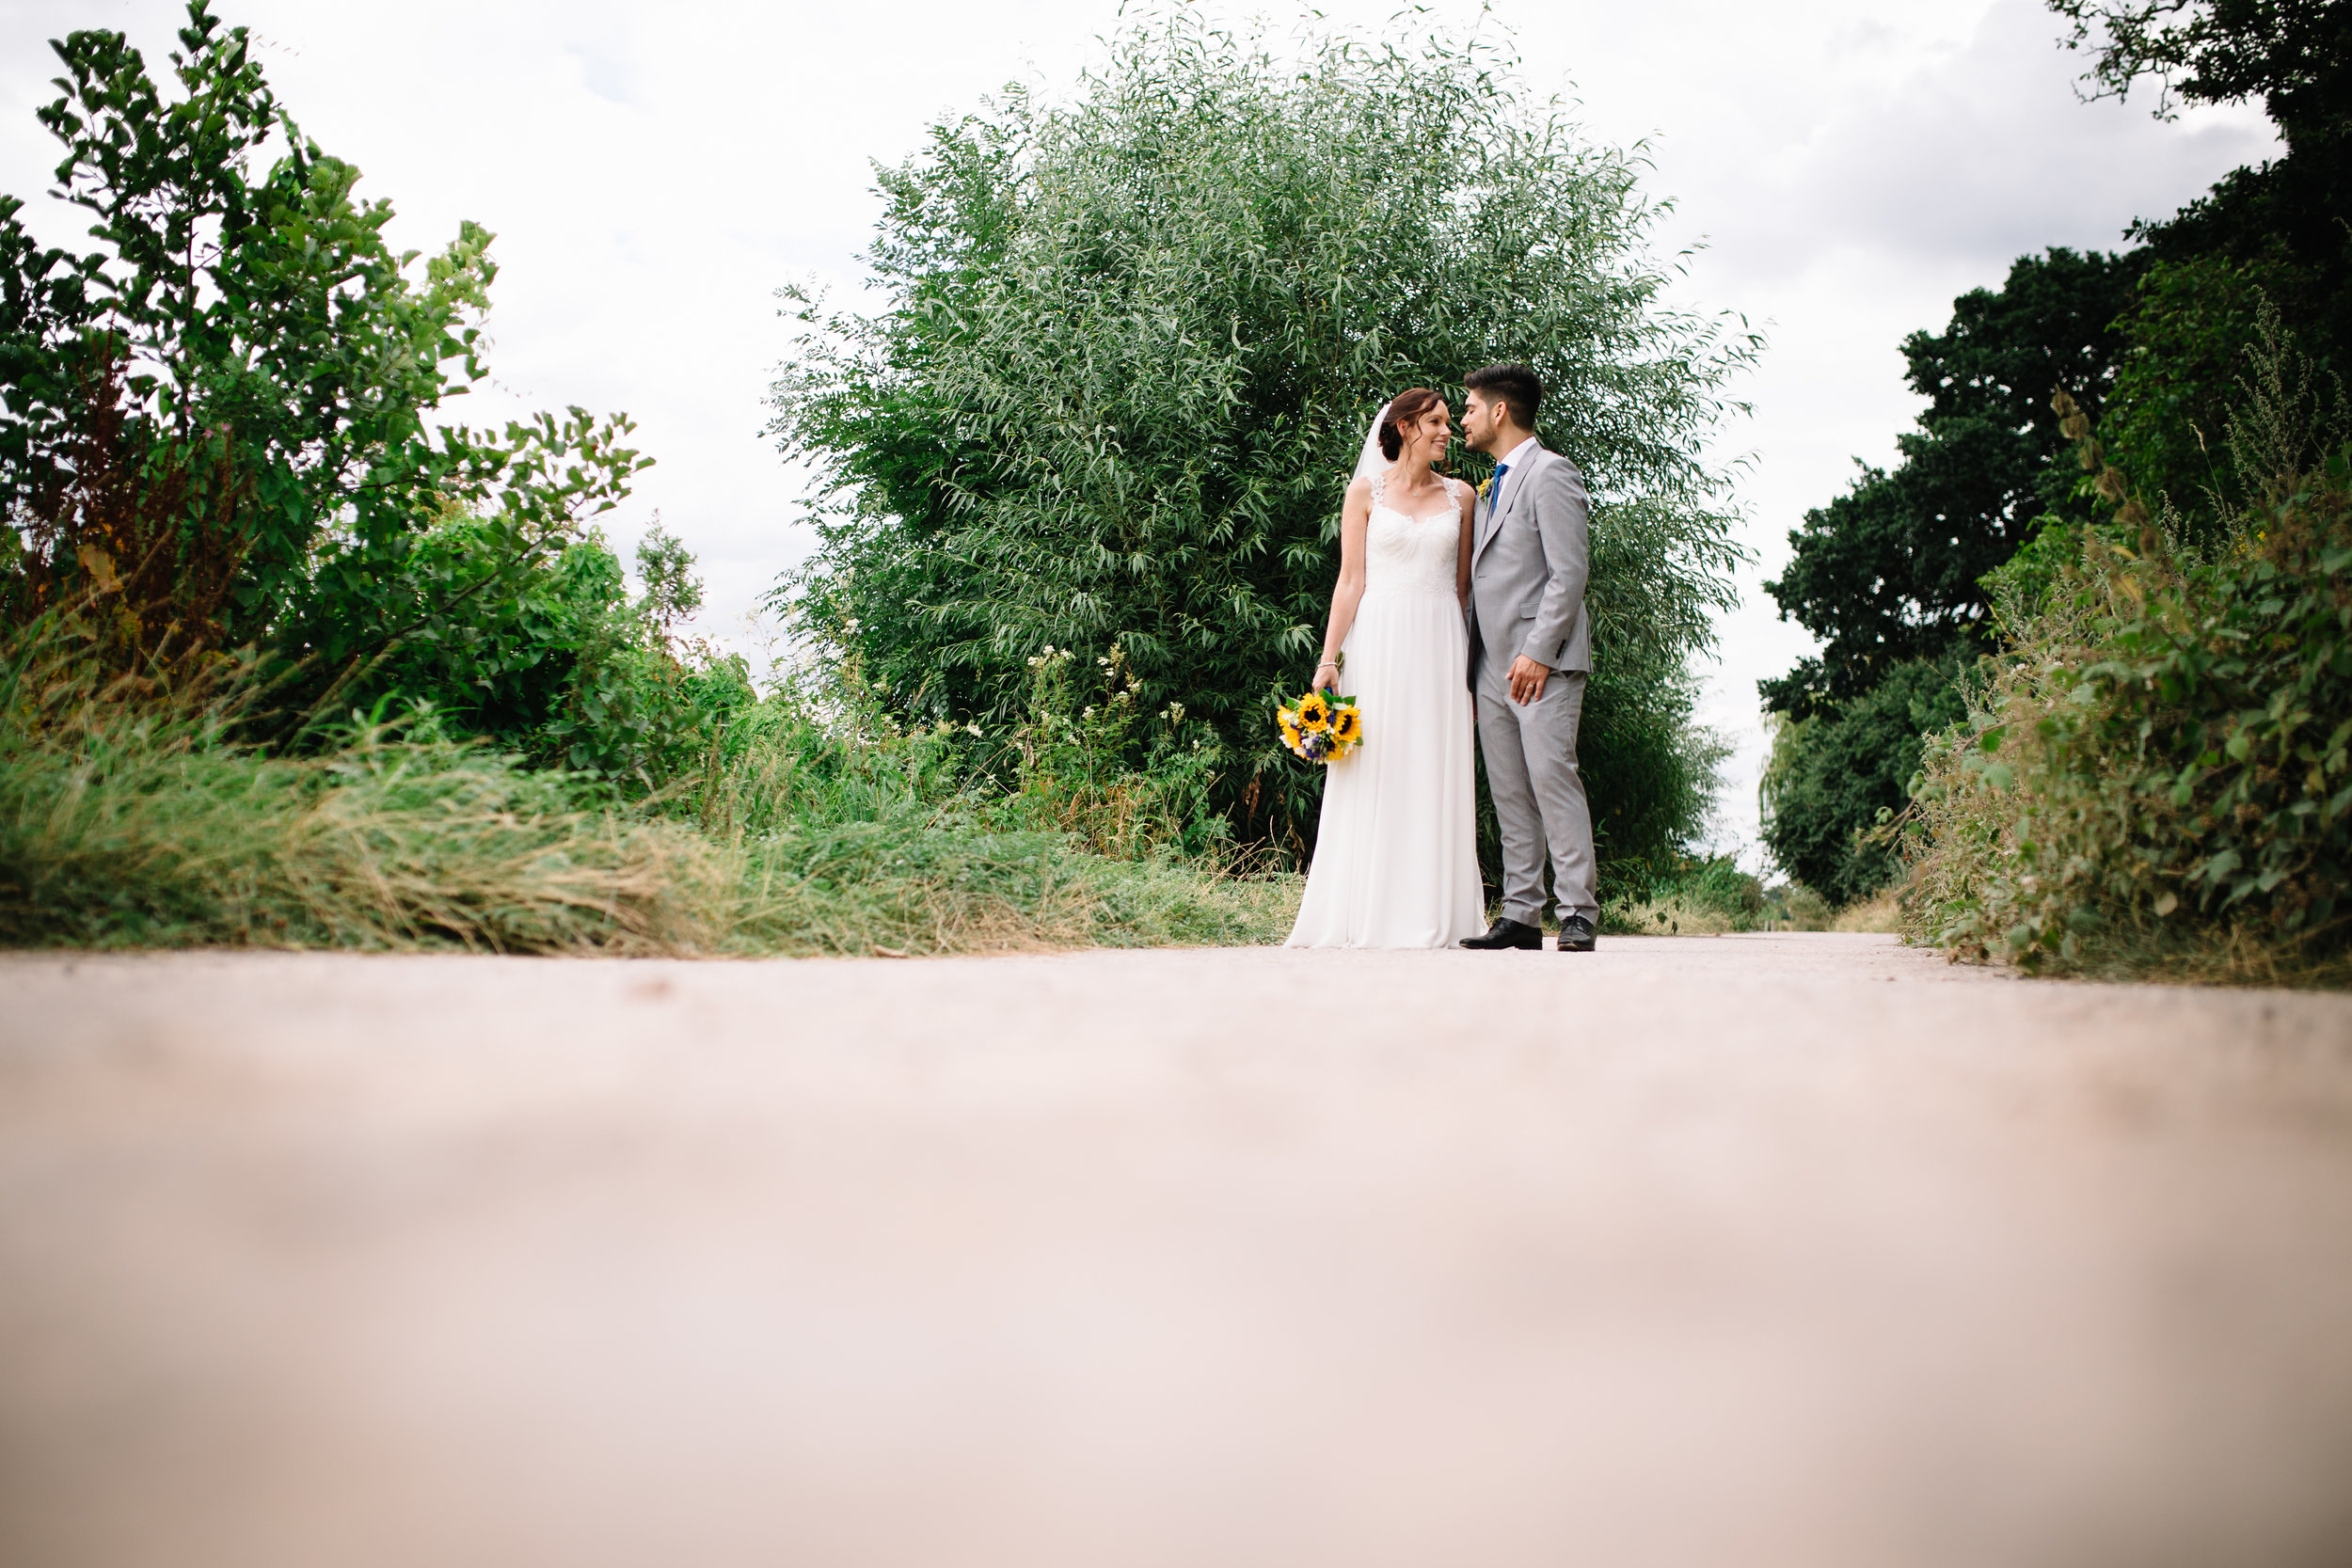 Walton on thames Kingston Wedding Photographer_Susie Fisher